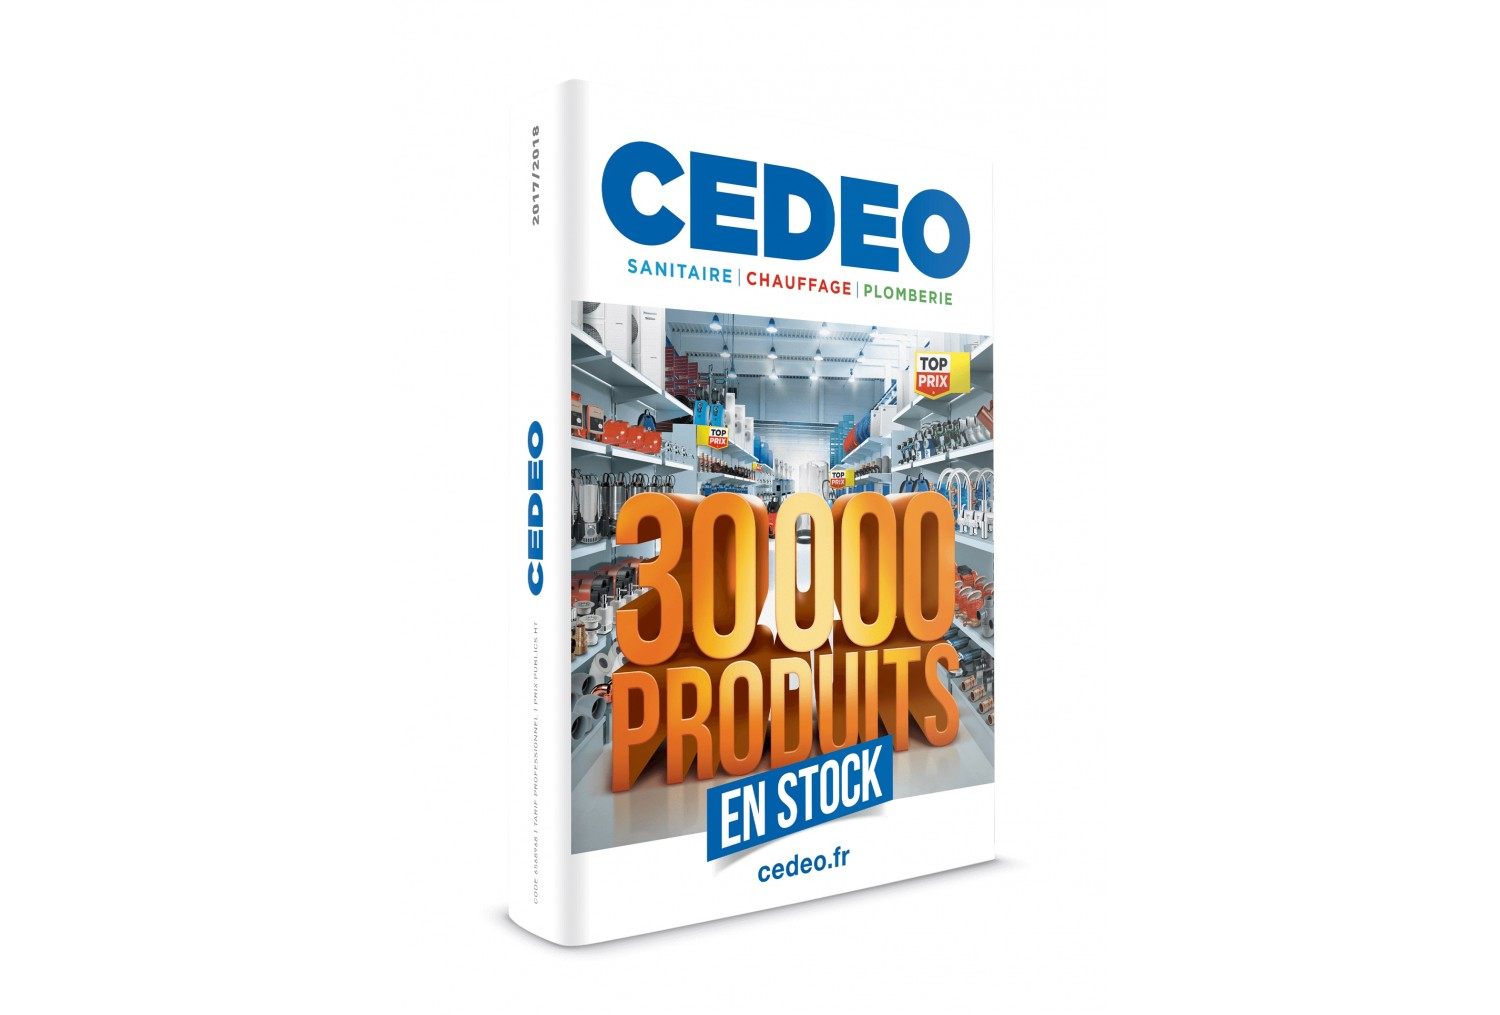 CEDEO édite son catalogue Pro 2017